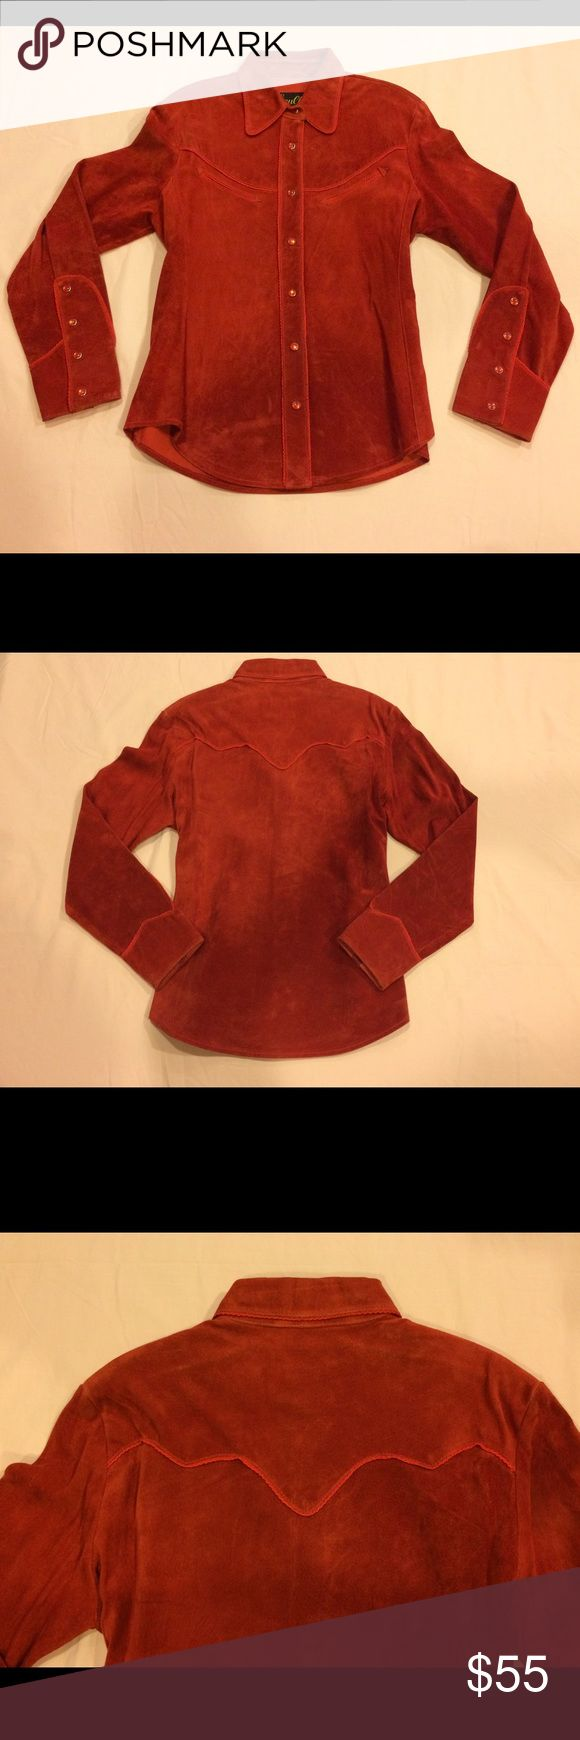 """Scully Shirt/Jacket Gorgeous burnt orange color!! In very good used condition.  Tapered waist with a very flattering fit. Thick matching thread that outlines the front and back yoke, the chest pockets, the placket and the very decorative cuffs. Snap buttons match the suede, 7 down the front and 4 on each cuff.  The are some minor scuffs on front lower part, see pic. The cuffs have some wear, not anything detracting, inside is a 1/4"""" stain that can't be seen through the leather. See comments…"""